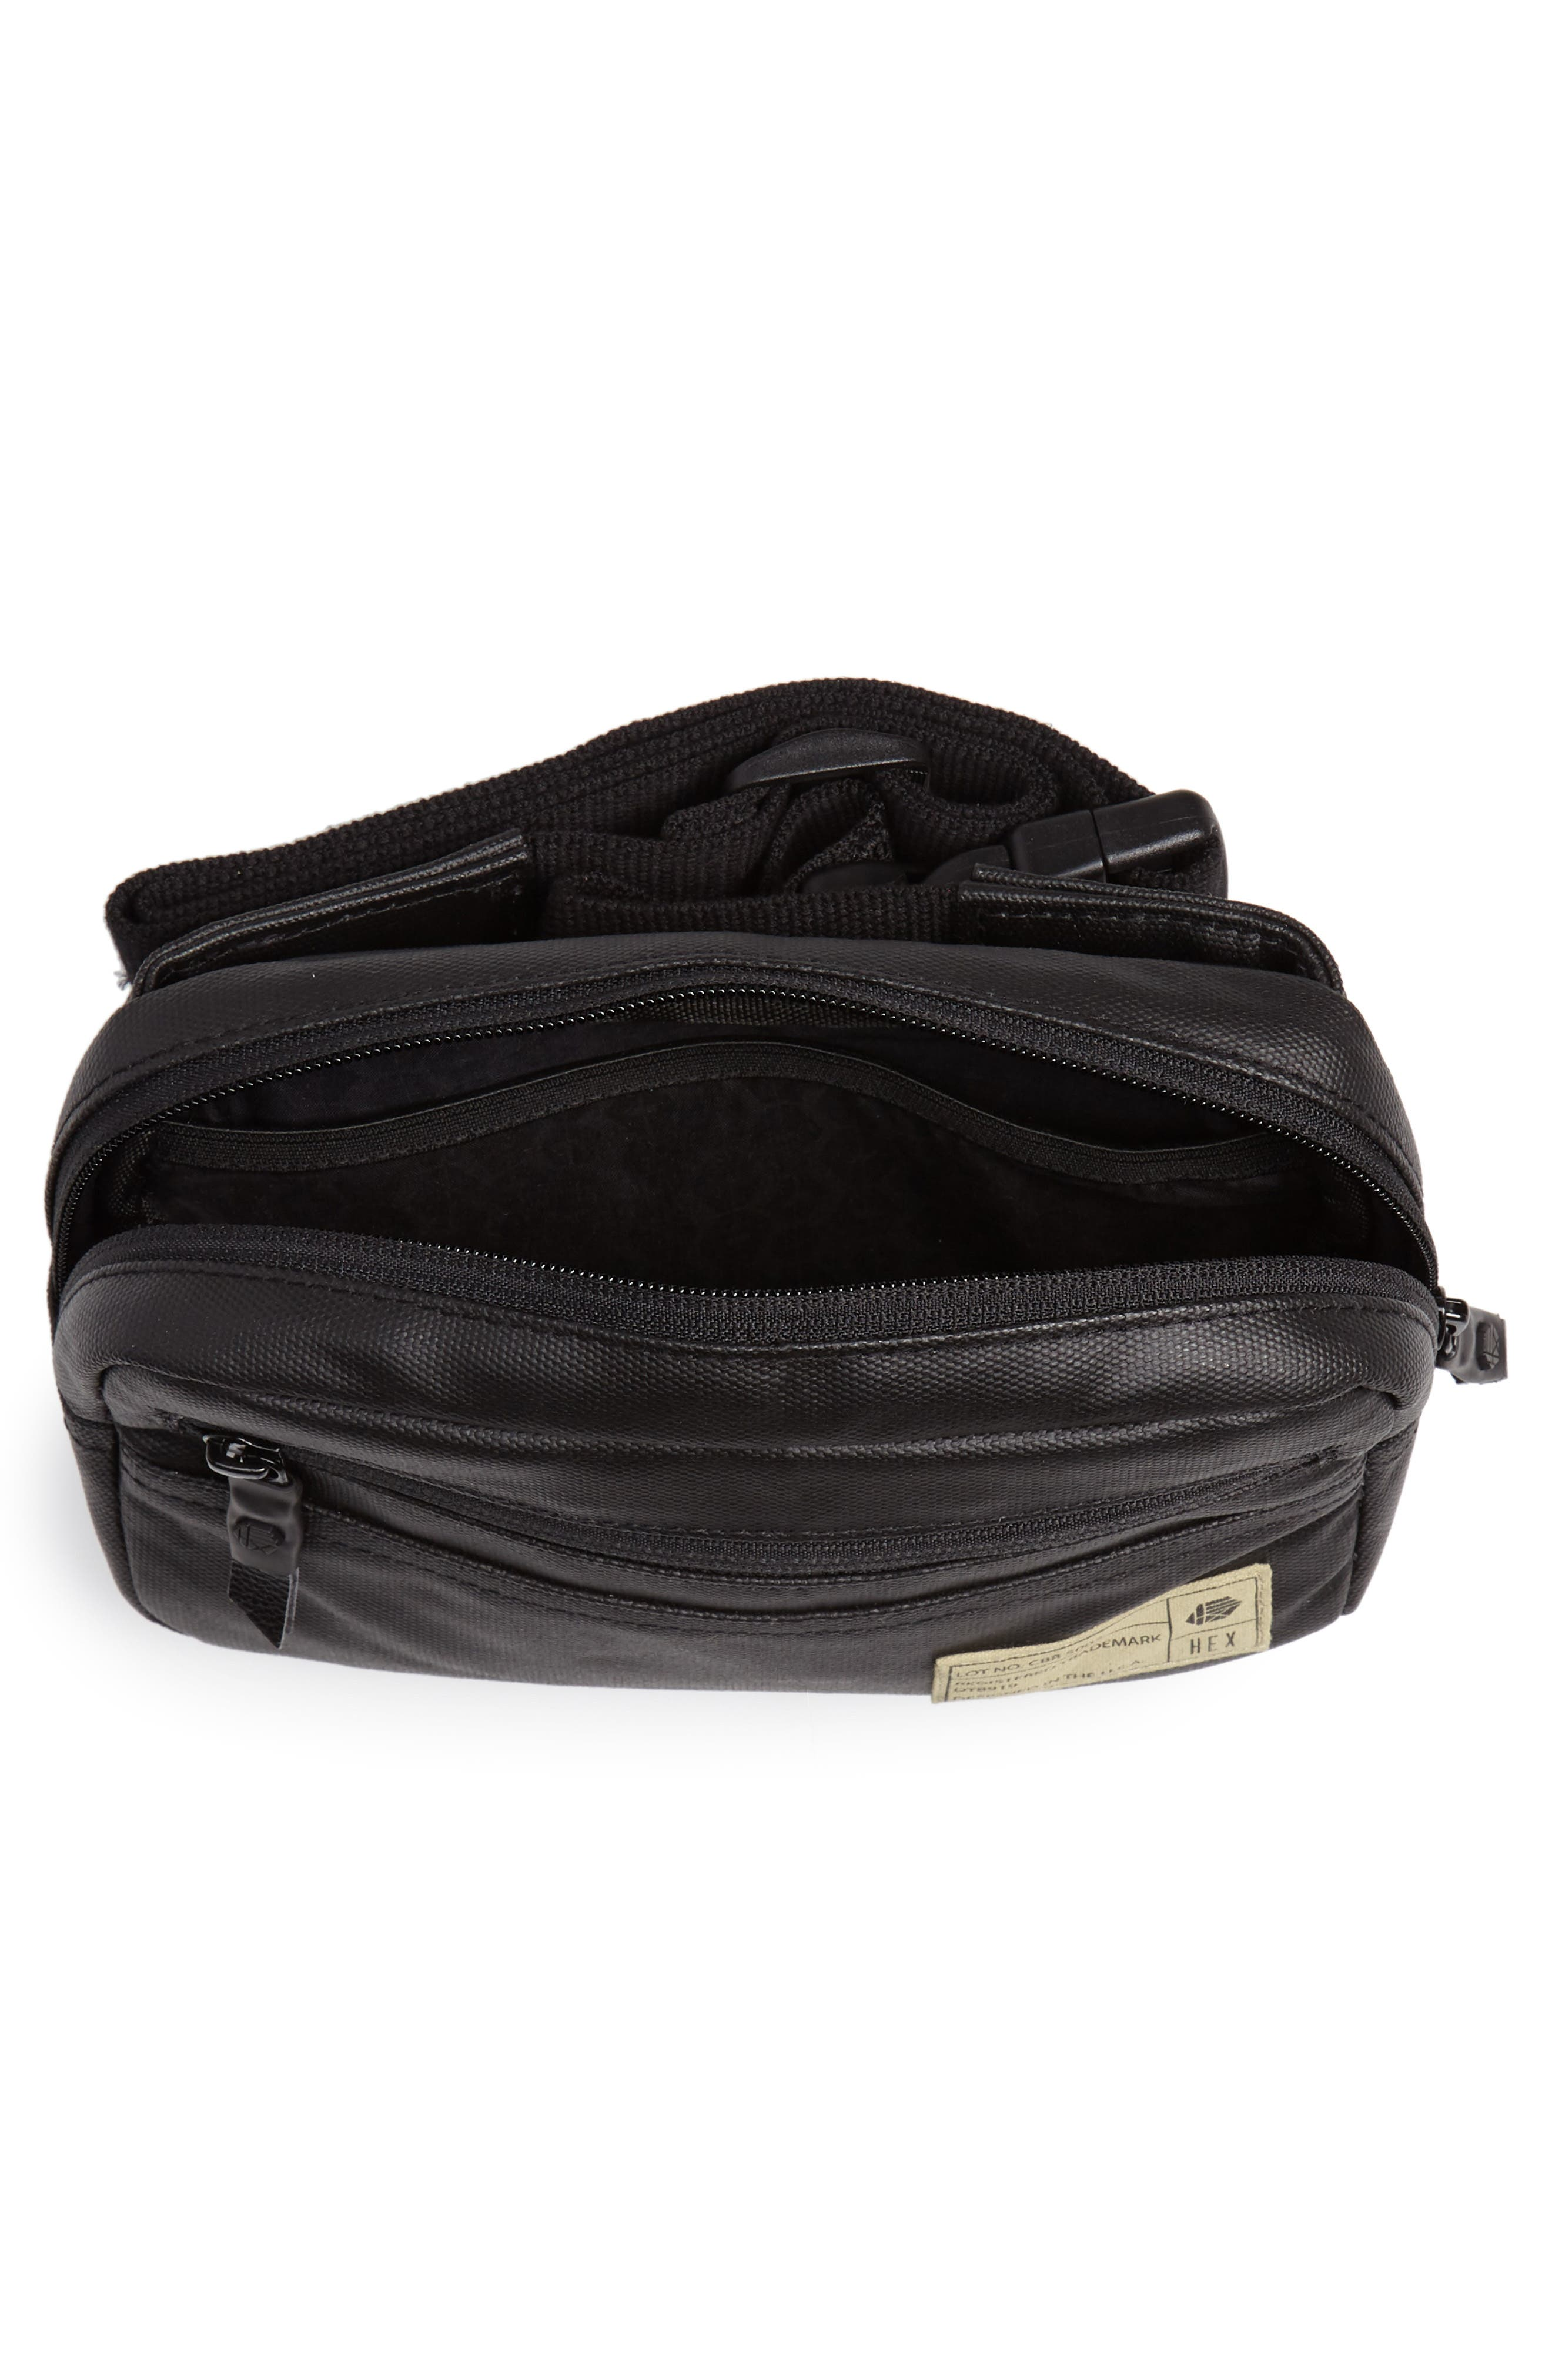 Aspect Collection Water Resistant Waist Pack,                             Alternate thumbnail 5, color,                             001